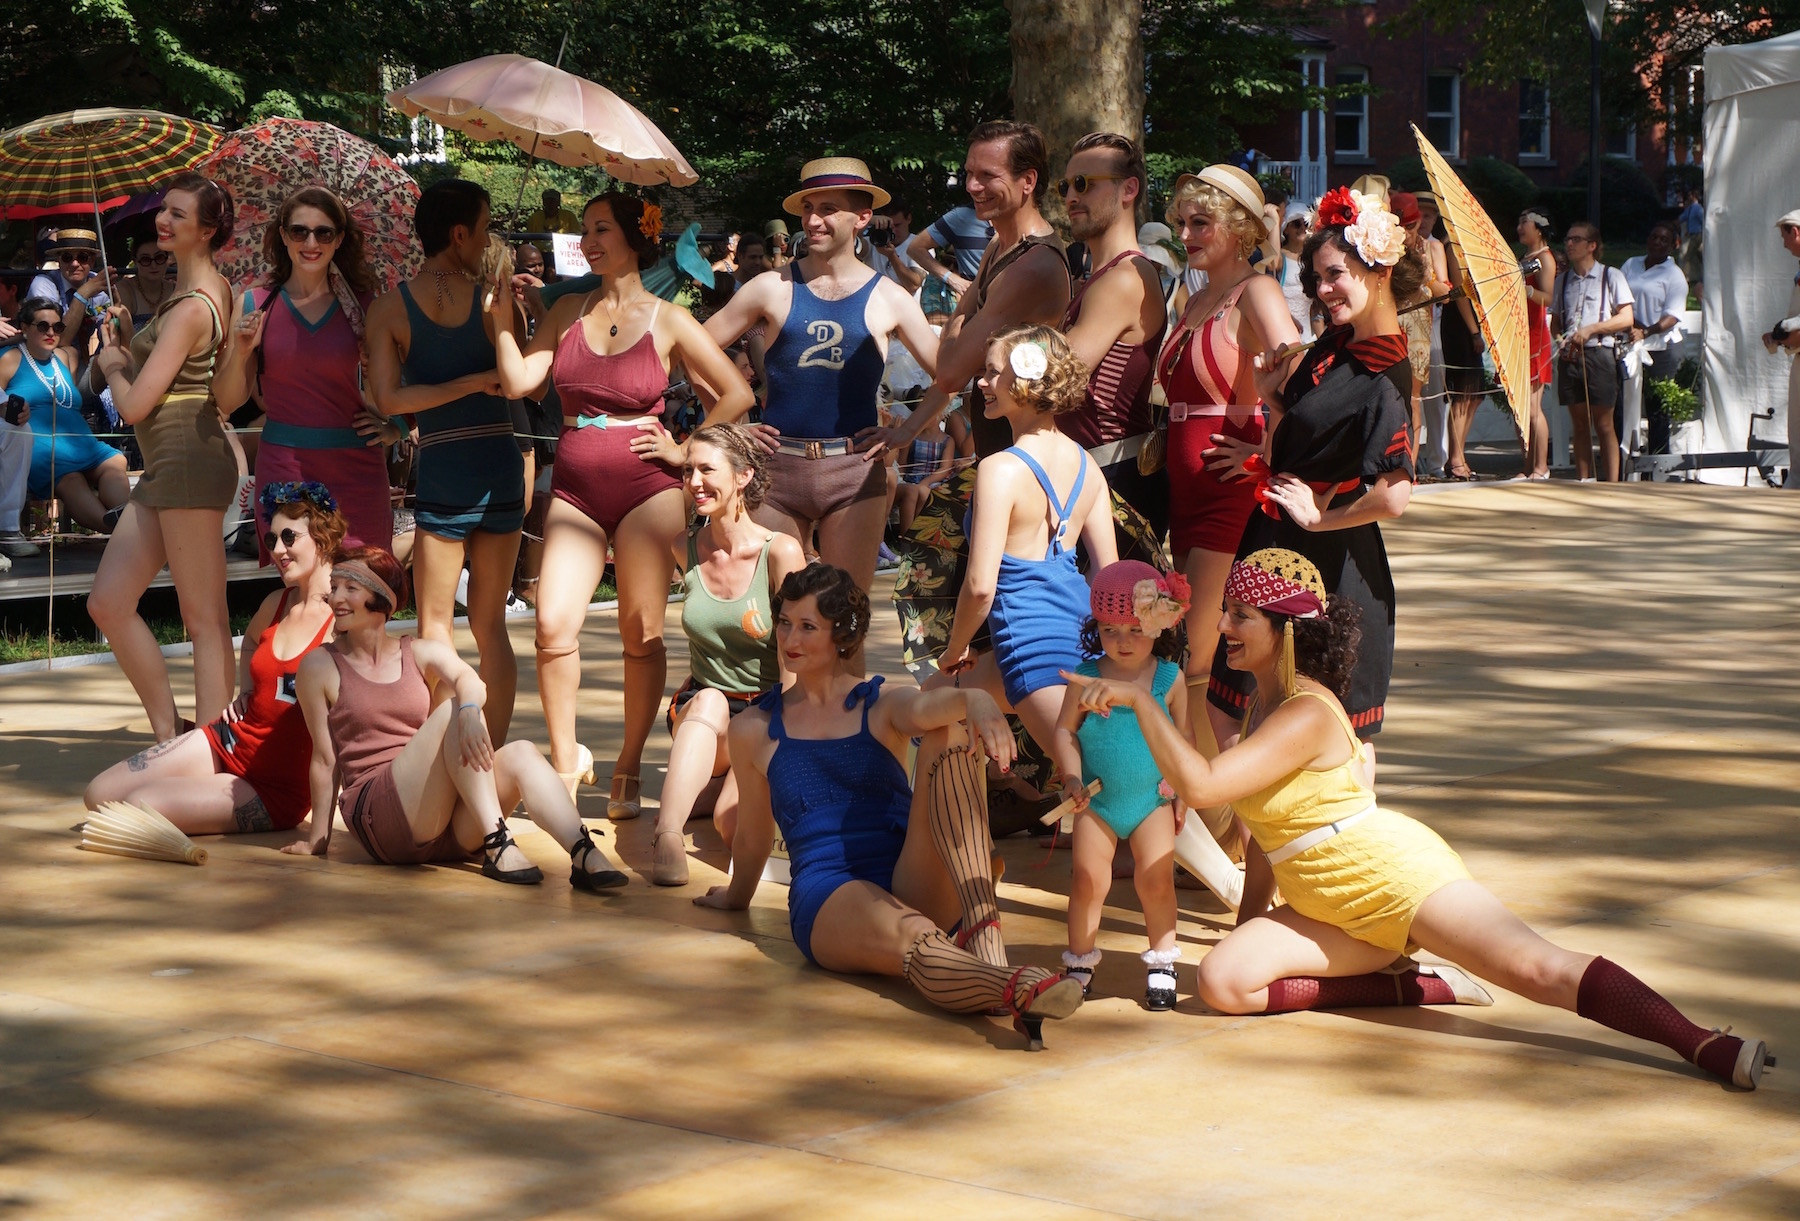 Jazz Age Lawn Party Bathing Beauties